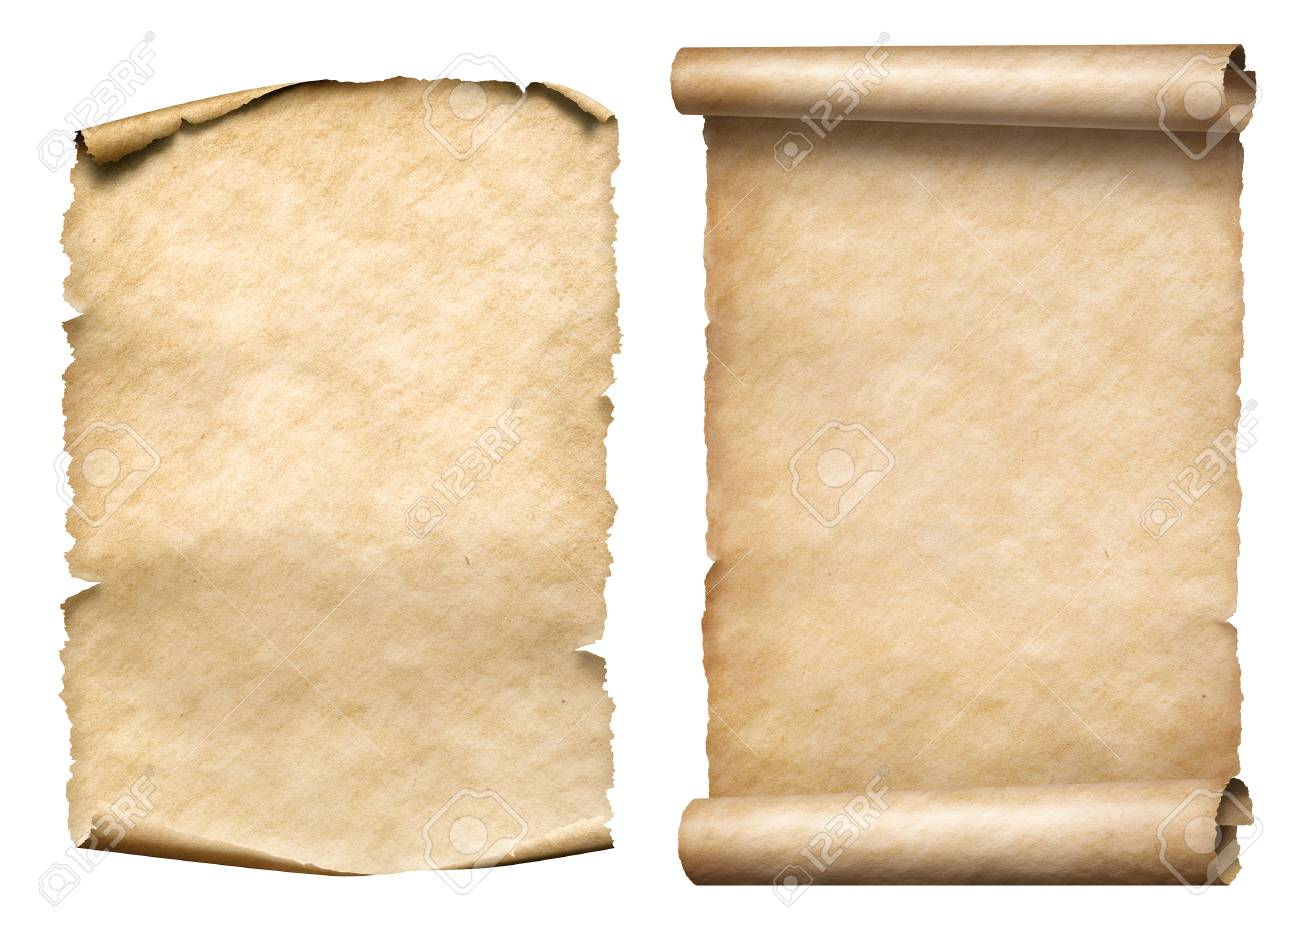 two old paper scrolls or parchments realistic set isolated